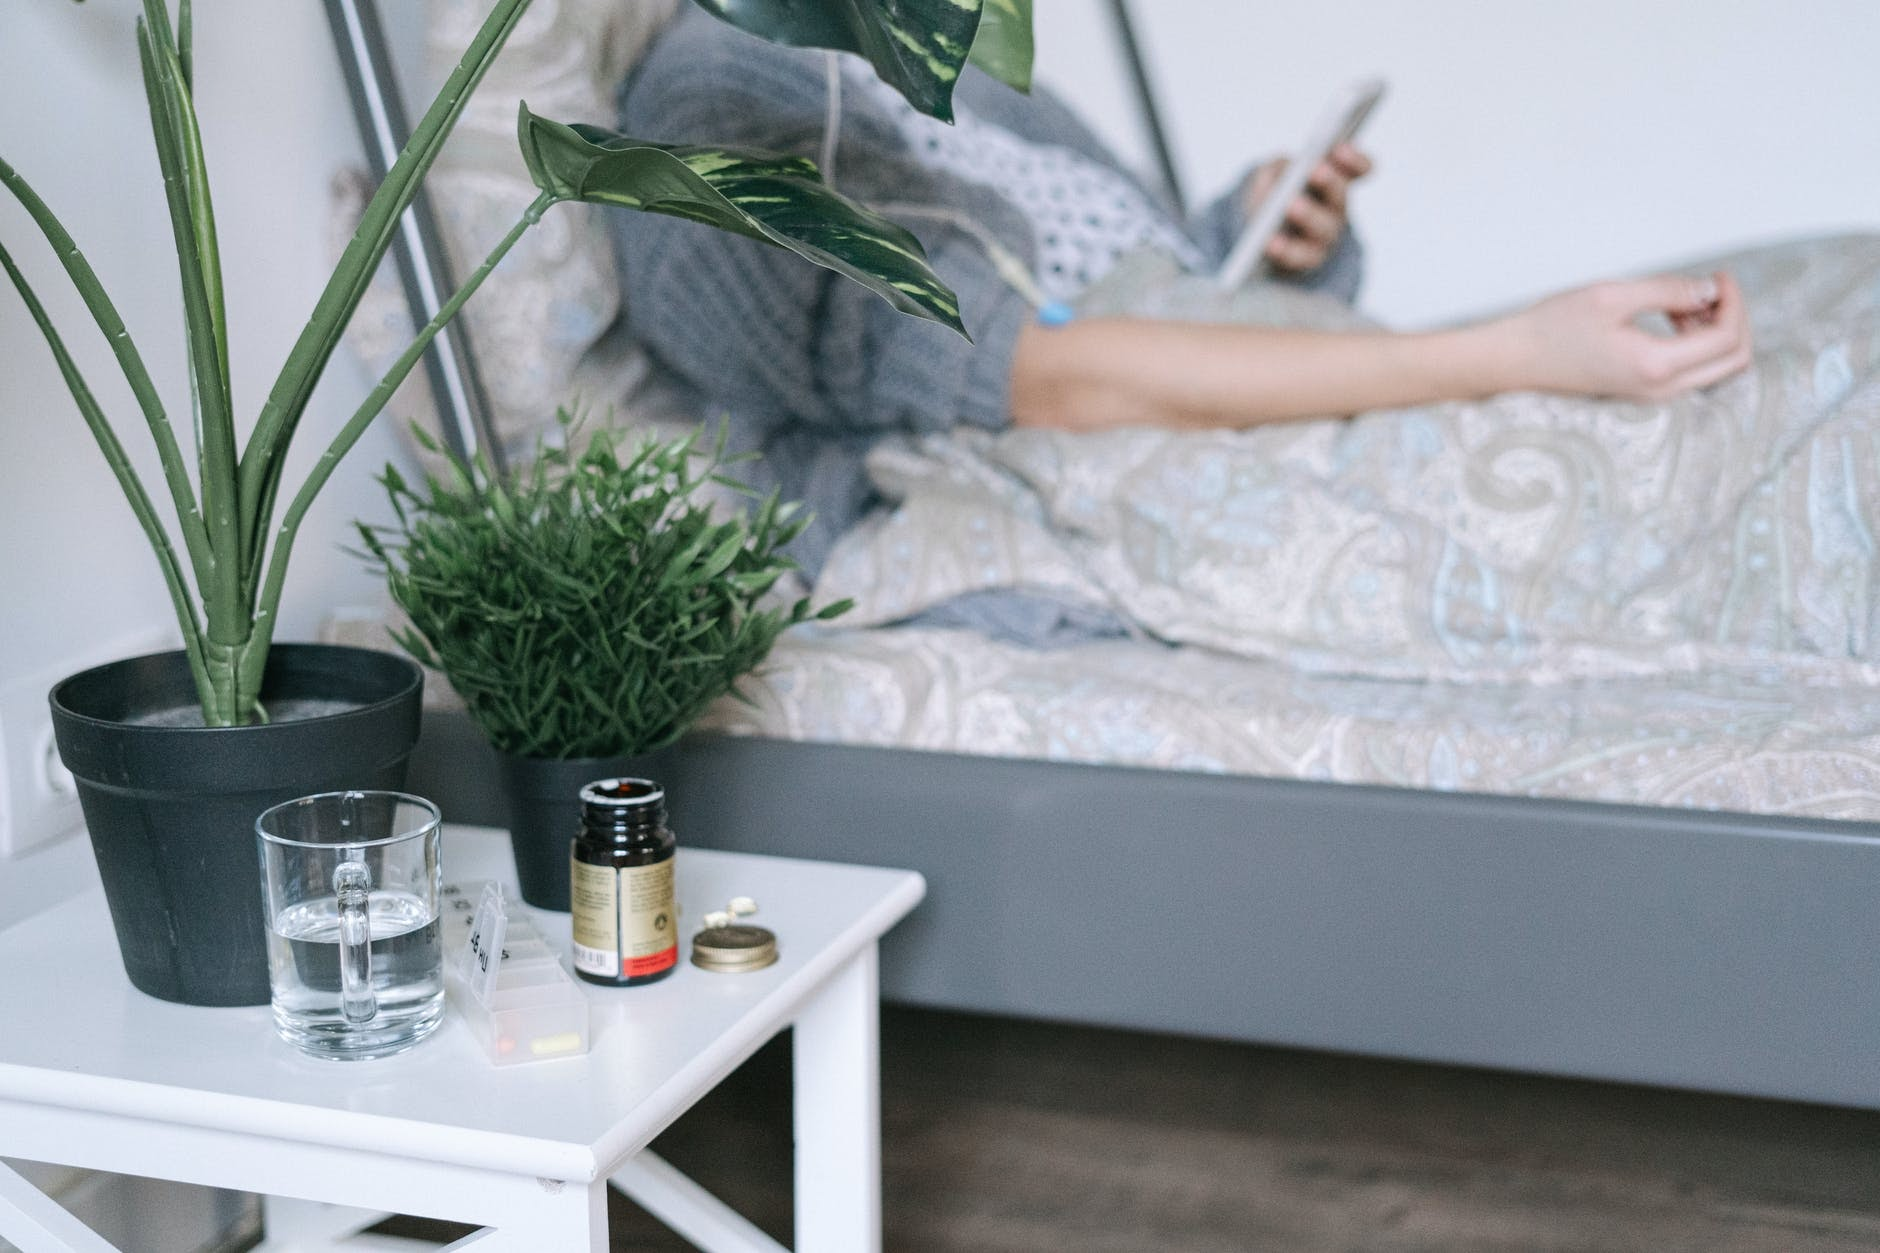 a person sitting in bed with medicine and a glass of water next to them